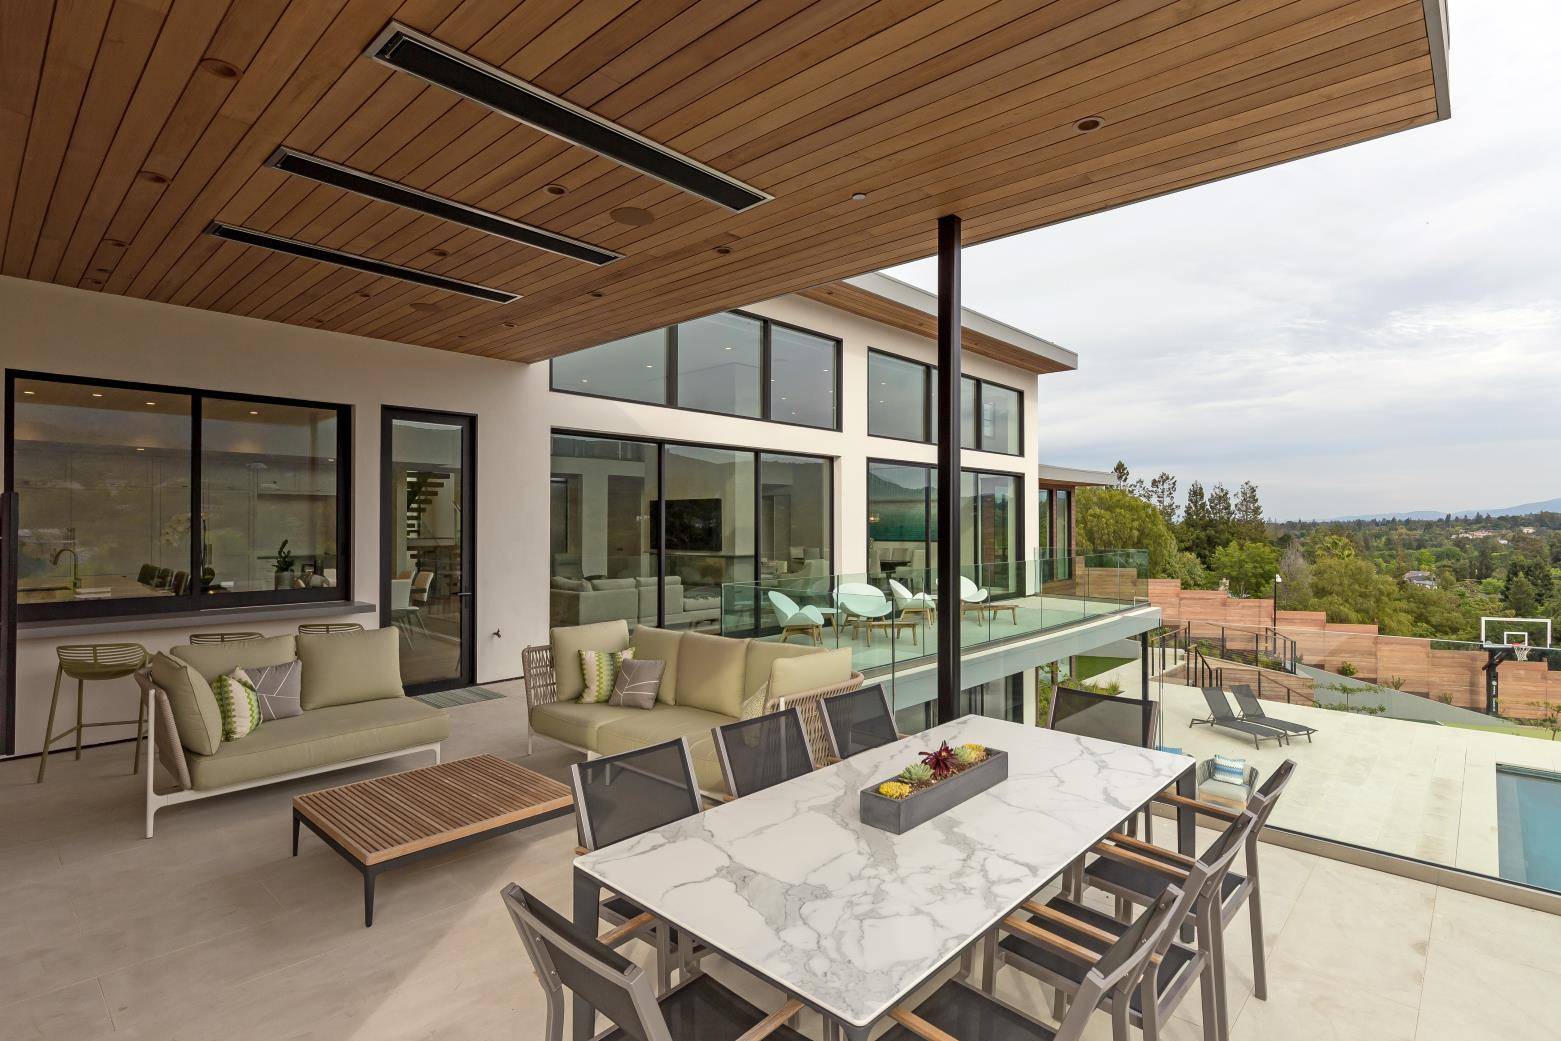 Best Exterior and Interior design work in Los Altos Hills